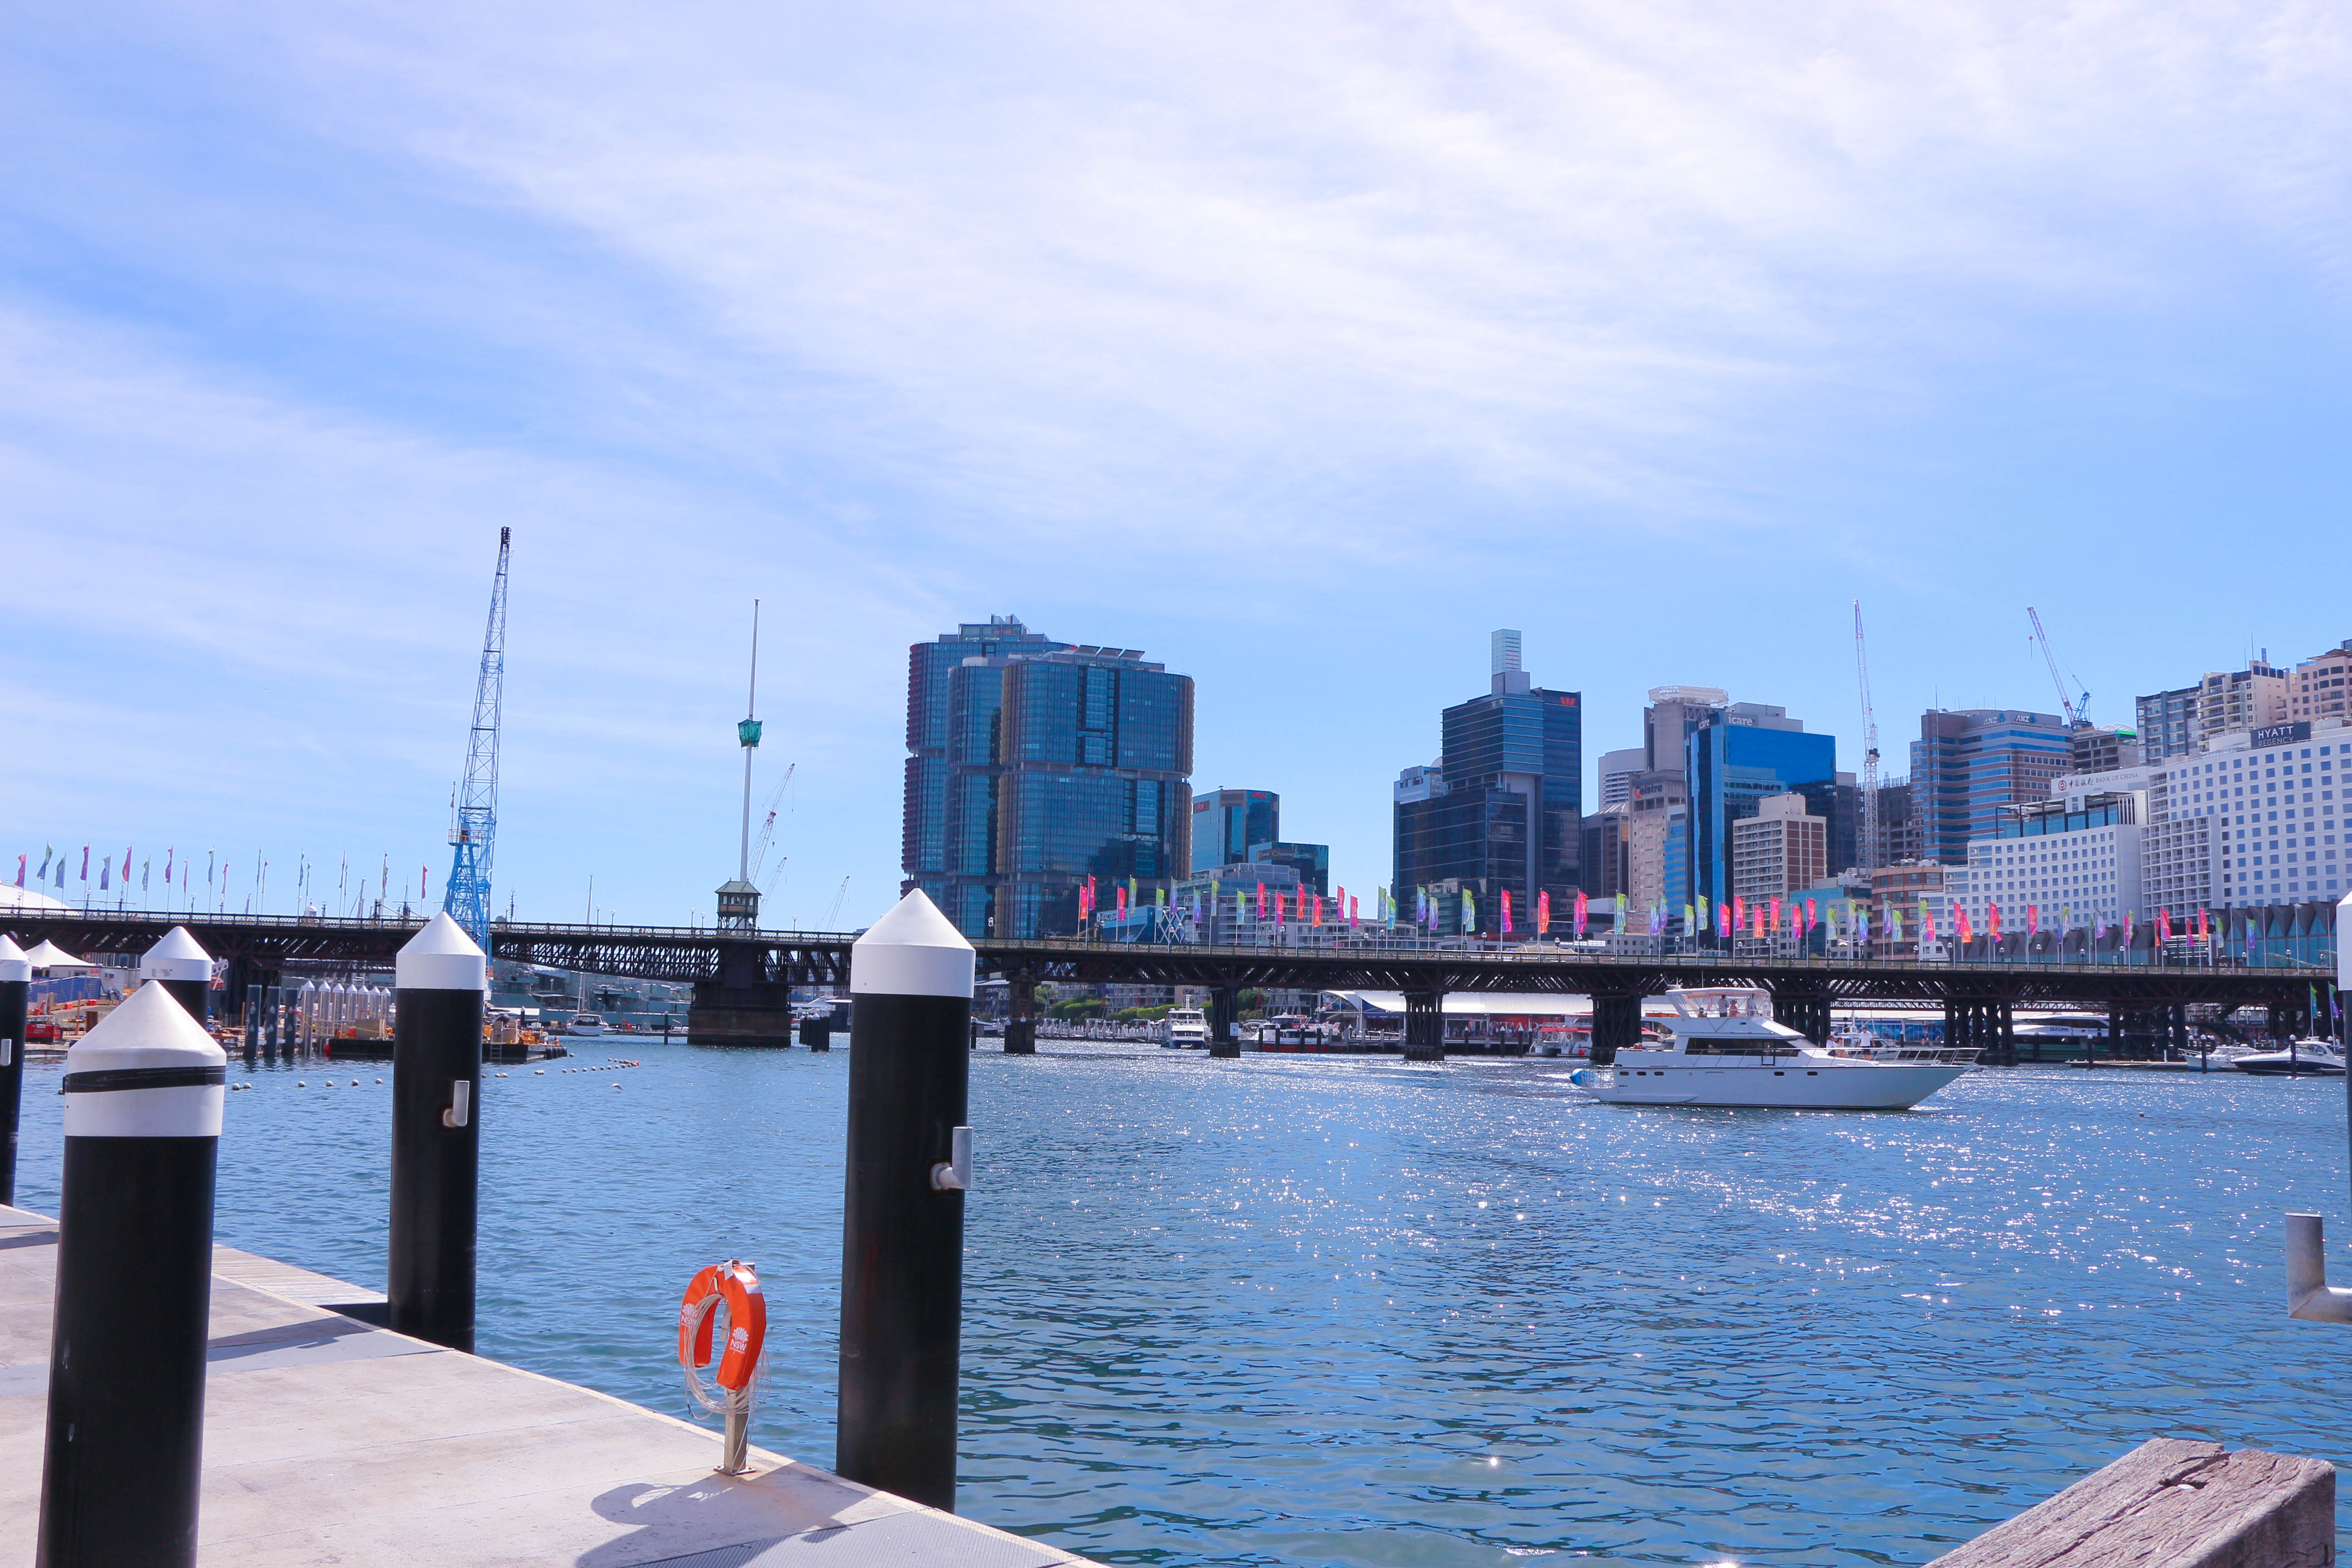 Darling Harbour during the day